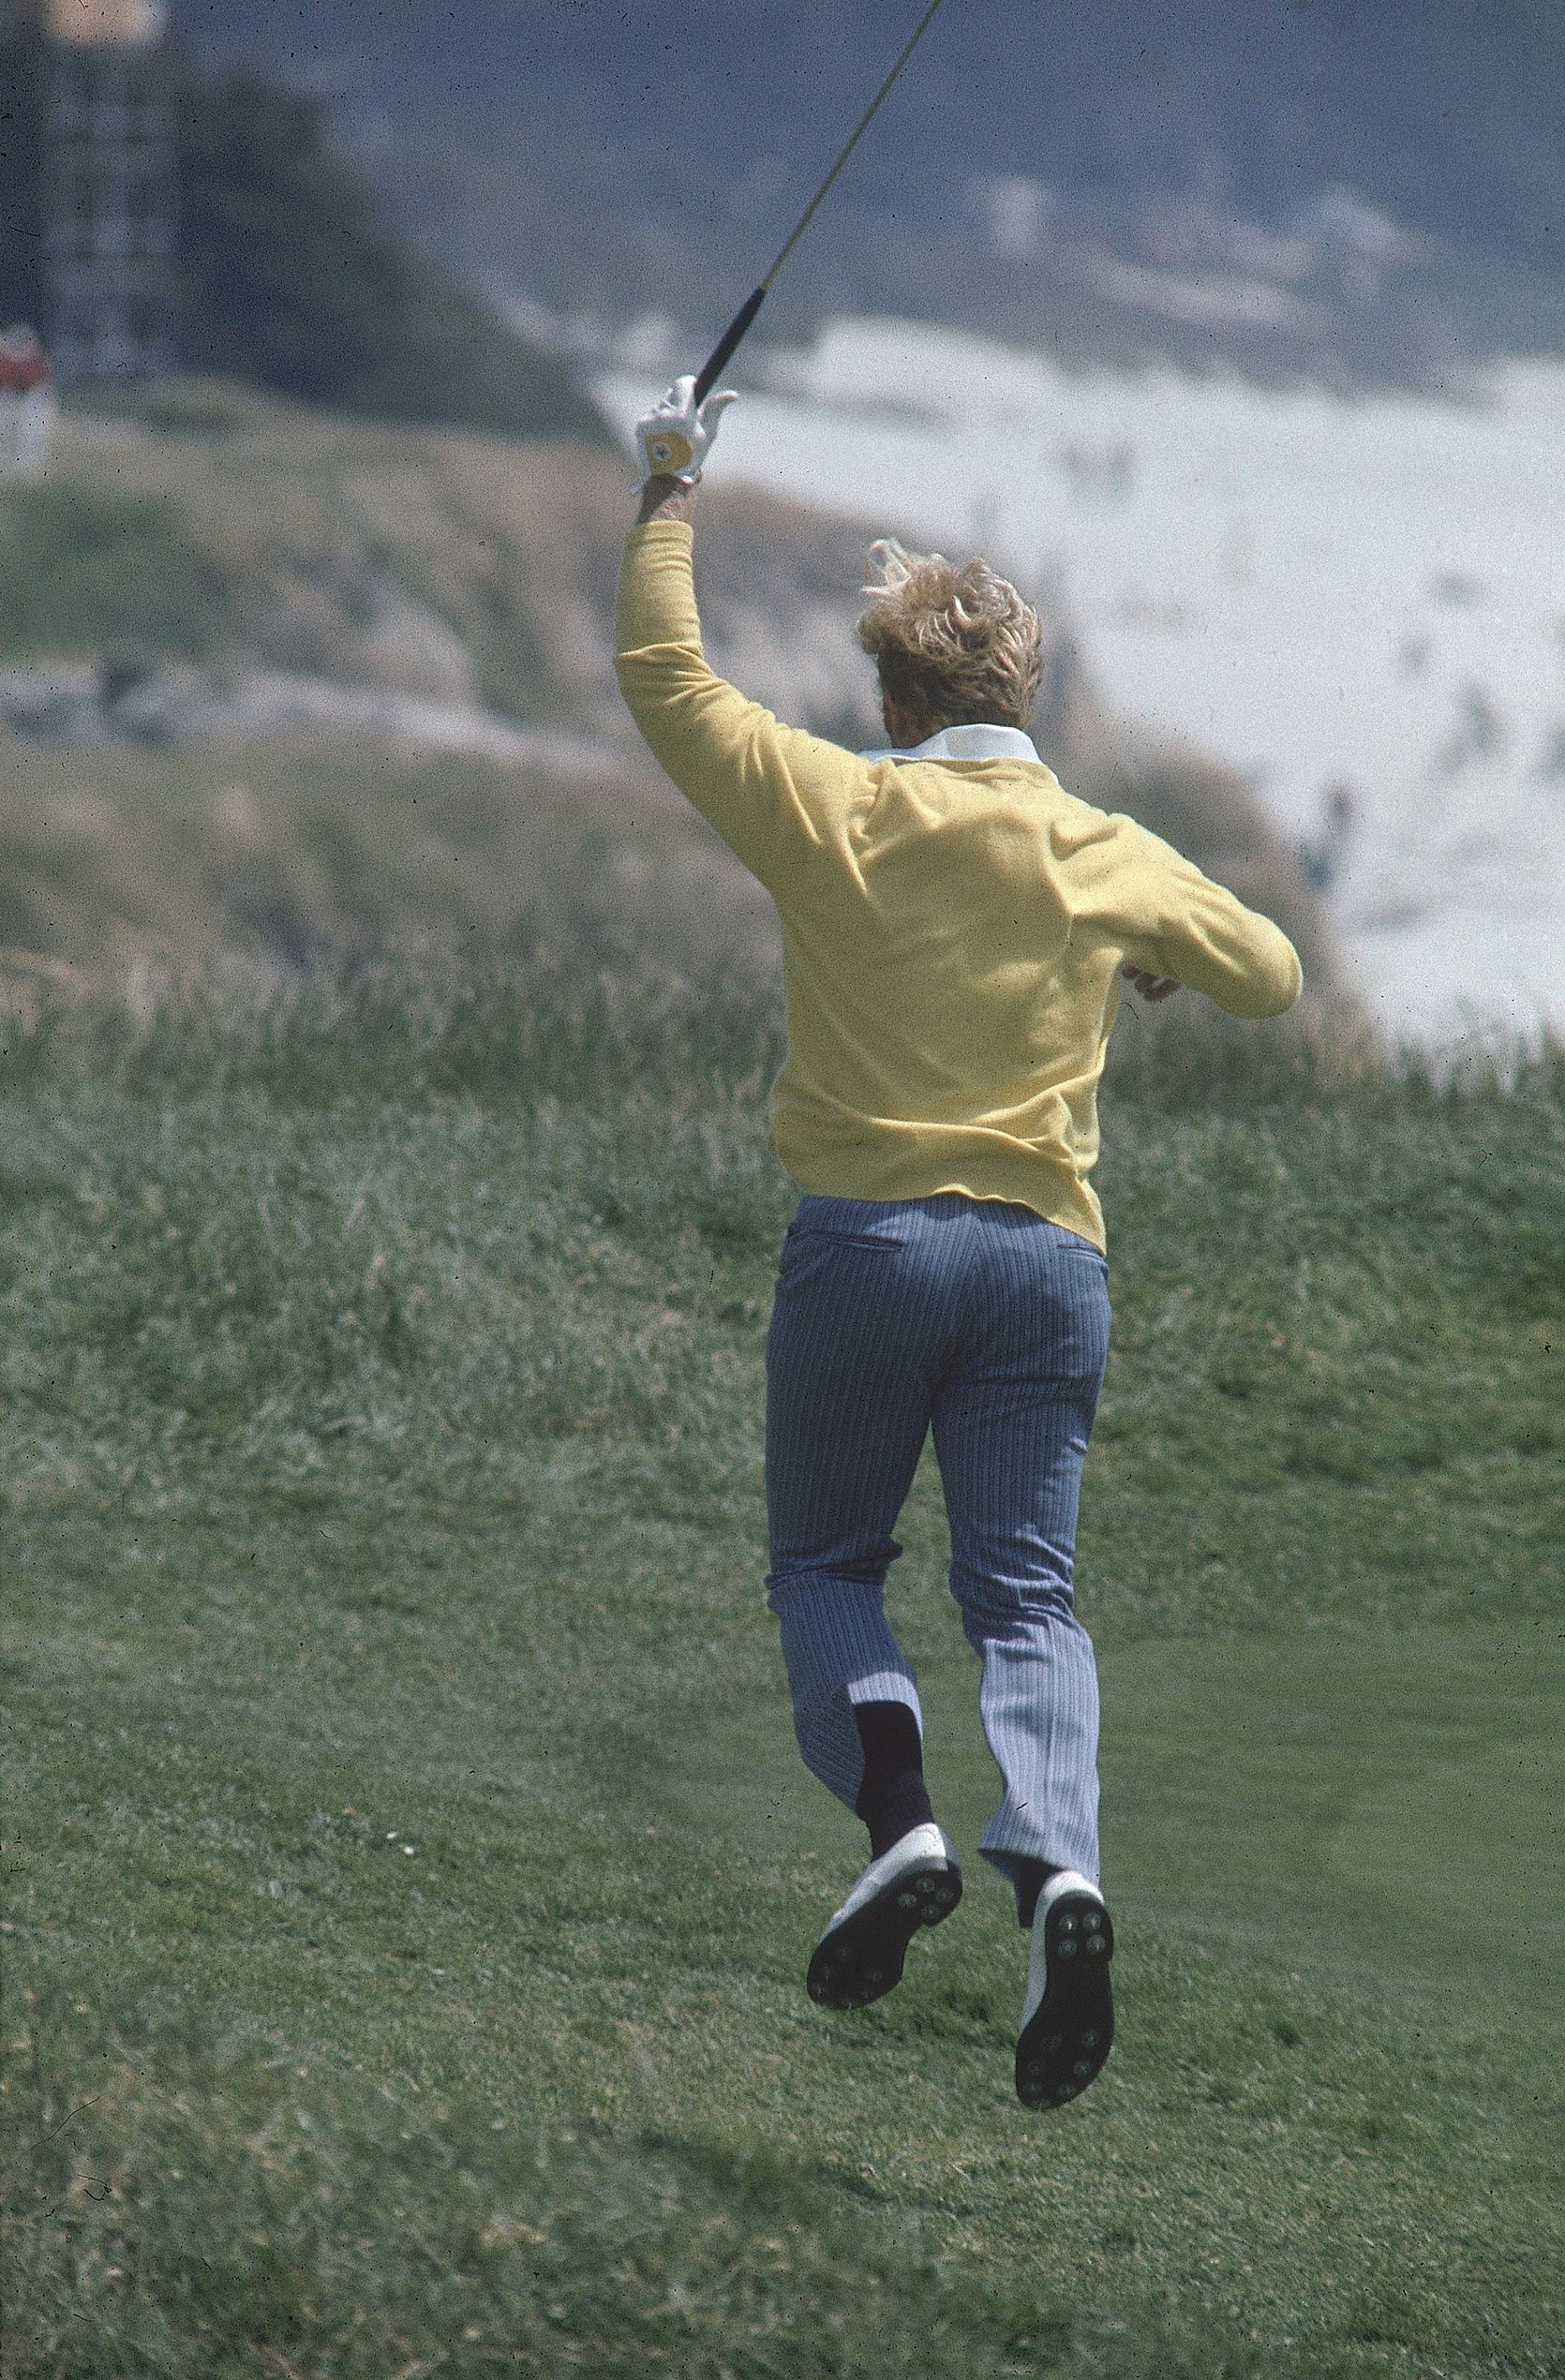 Jack Nicklaus reacts to a shot in the final round of the 1972 U.S. Open at Pebble Beach.